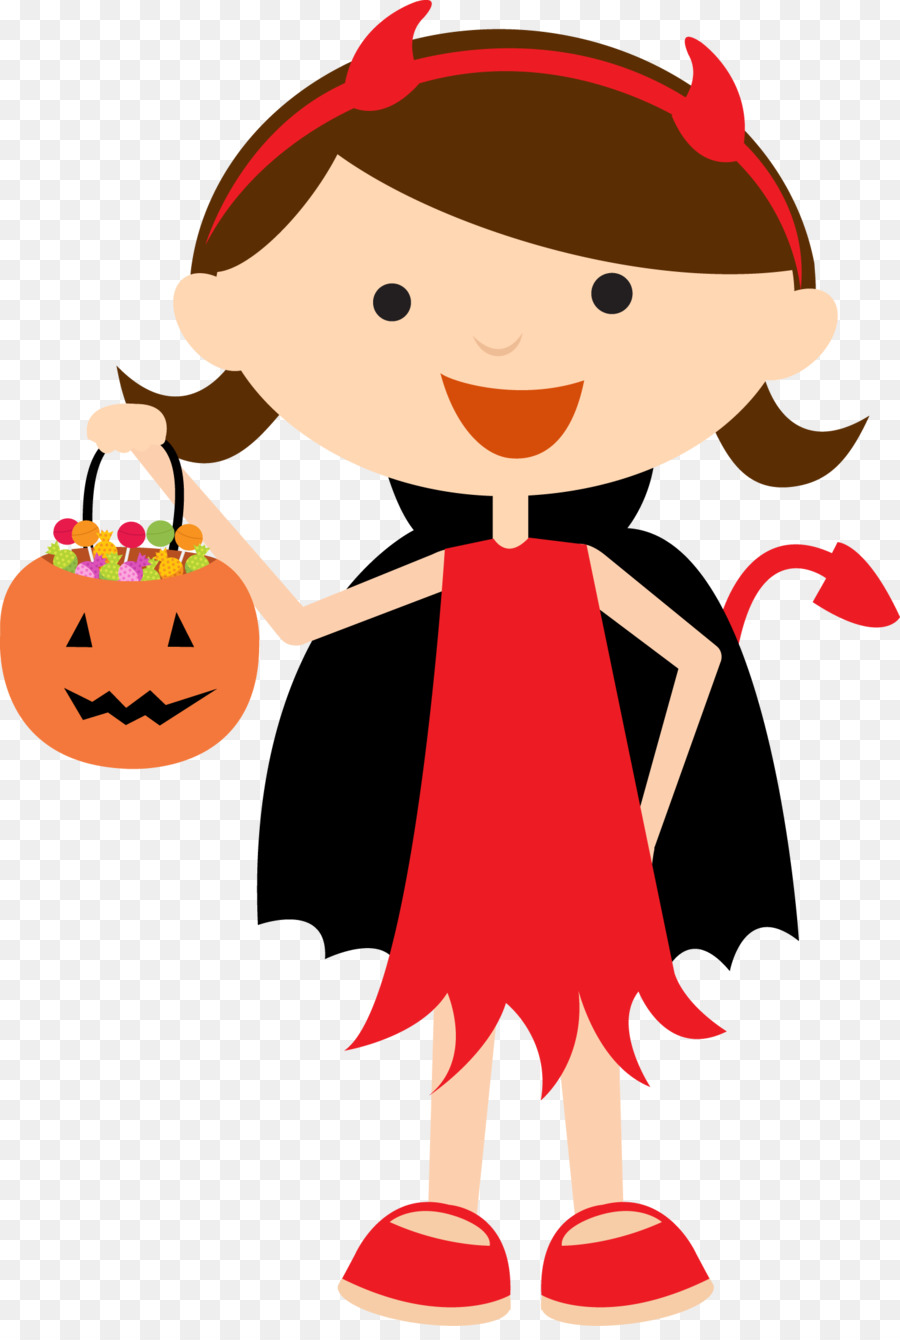 Halloween Costume Cartoon clipart.